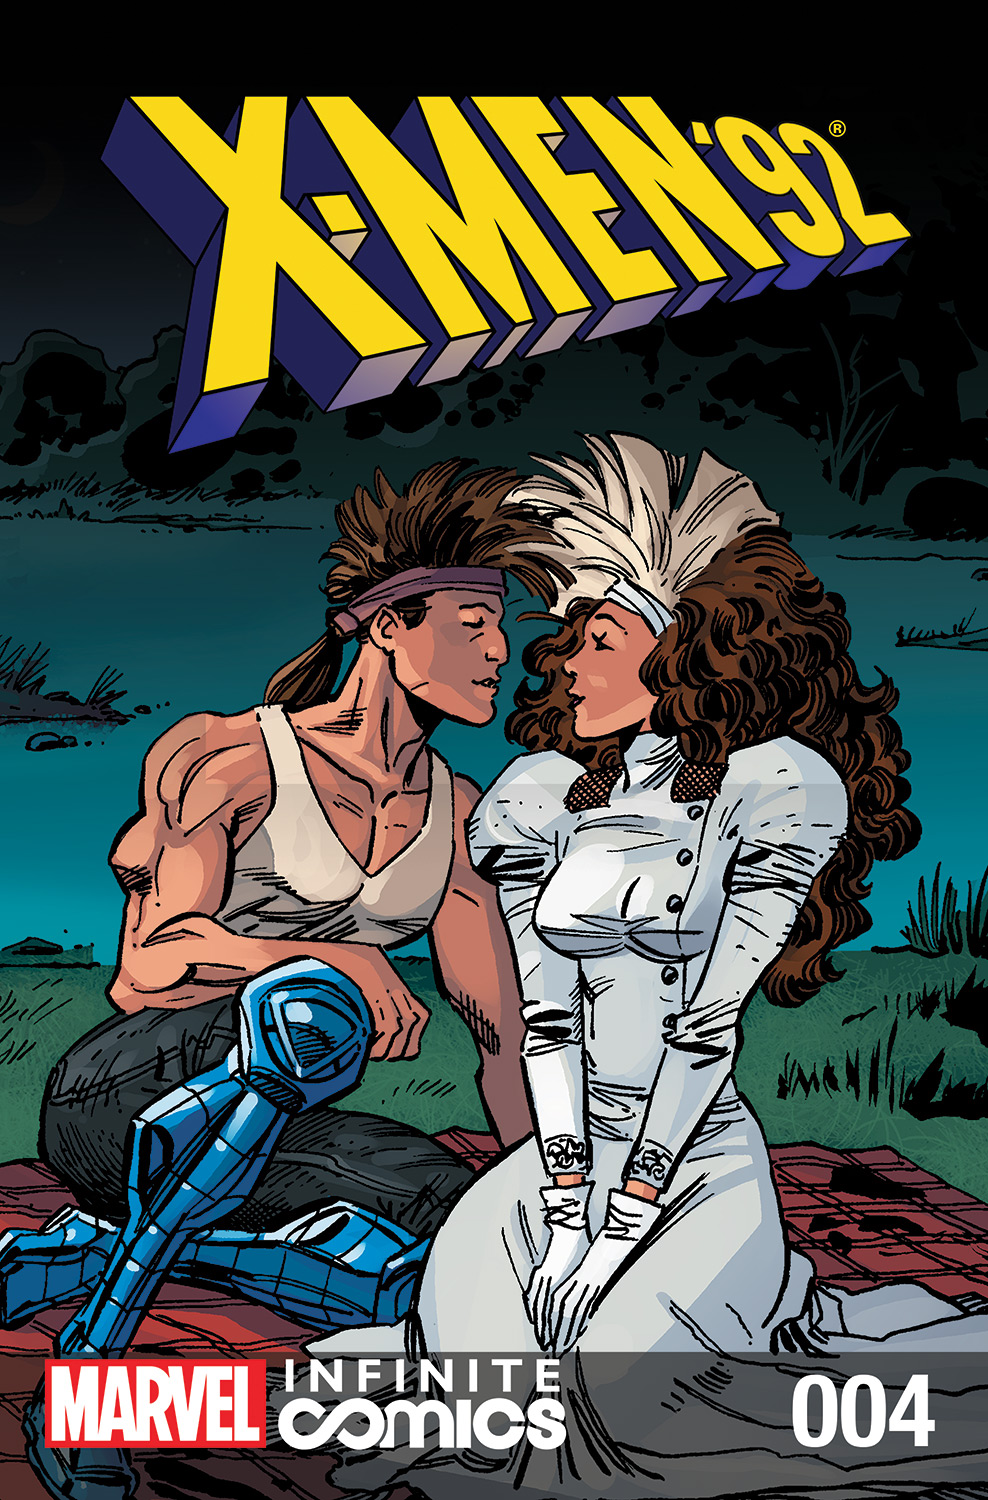 X-Men '92 Infinite Comic Vol 1 4